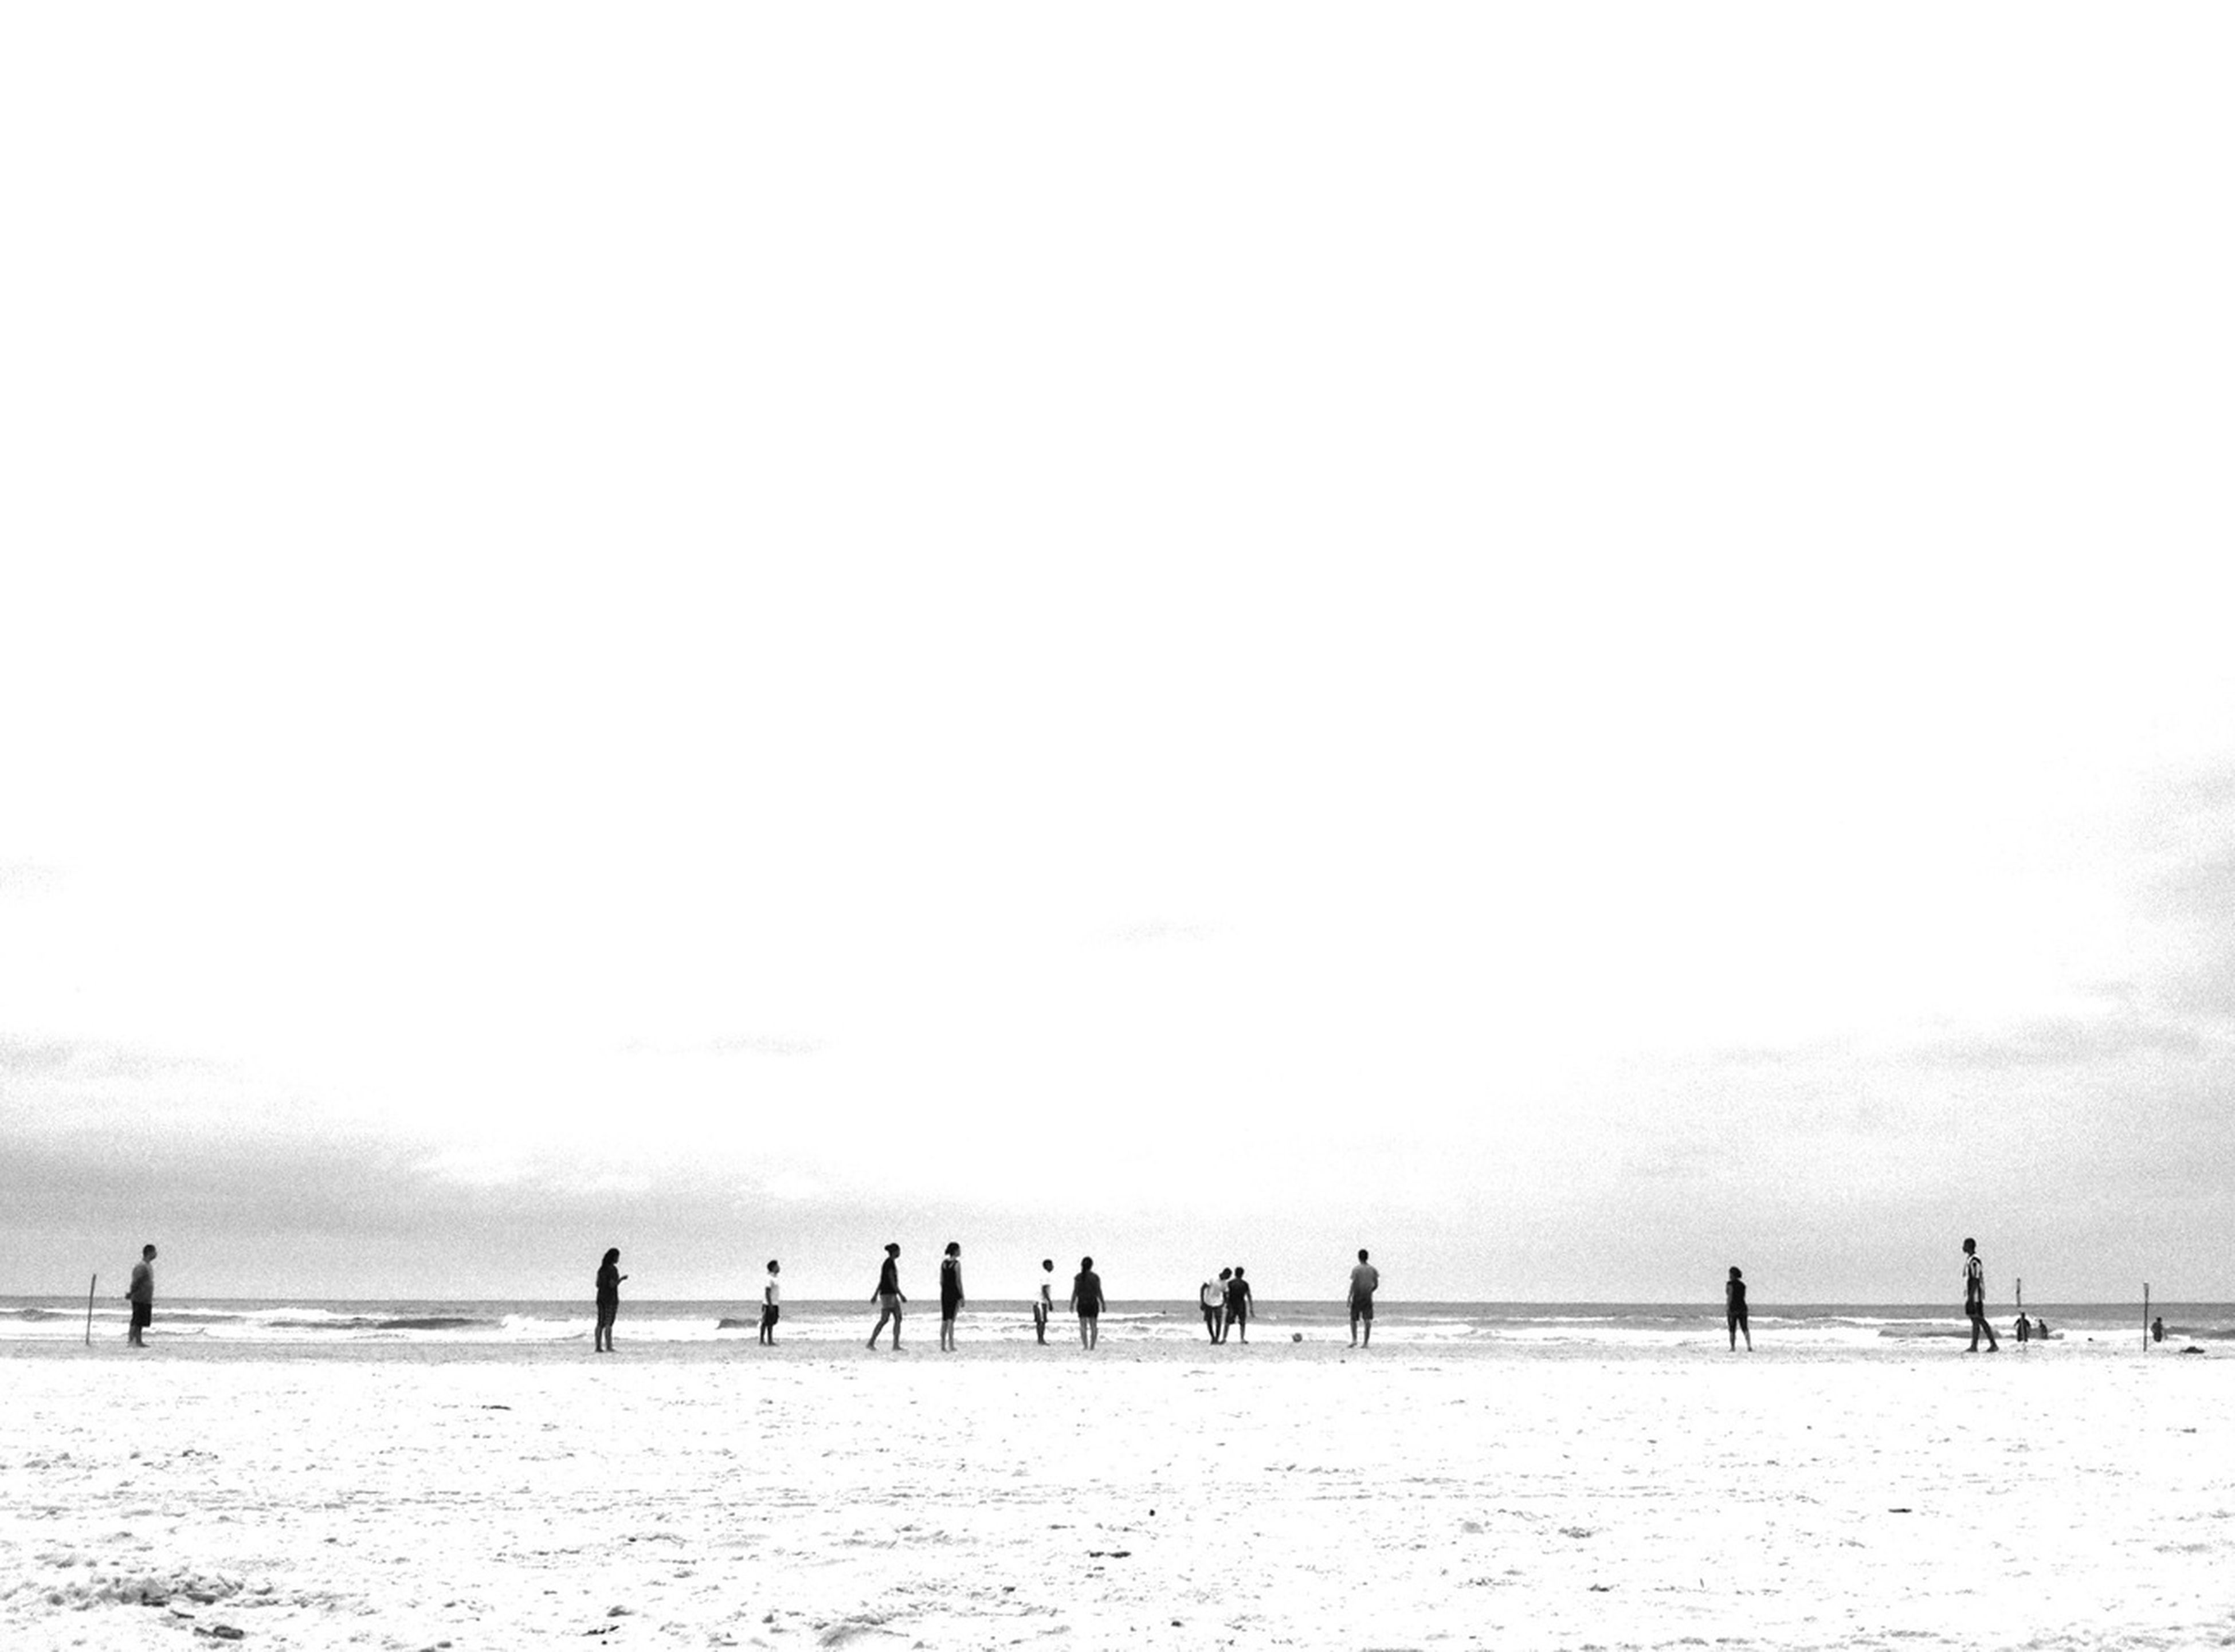 copy space, beach, clear sky, large group of people, sea, tranquility, nature, sand, tranquil scene, bird, day, leisure activity, vacations, men, outdoors, water, beauty in nature, lifestyles